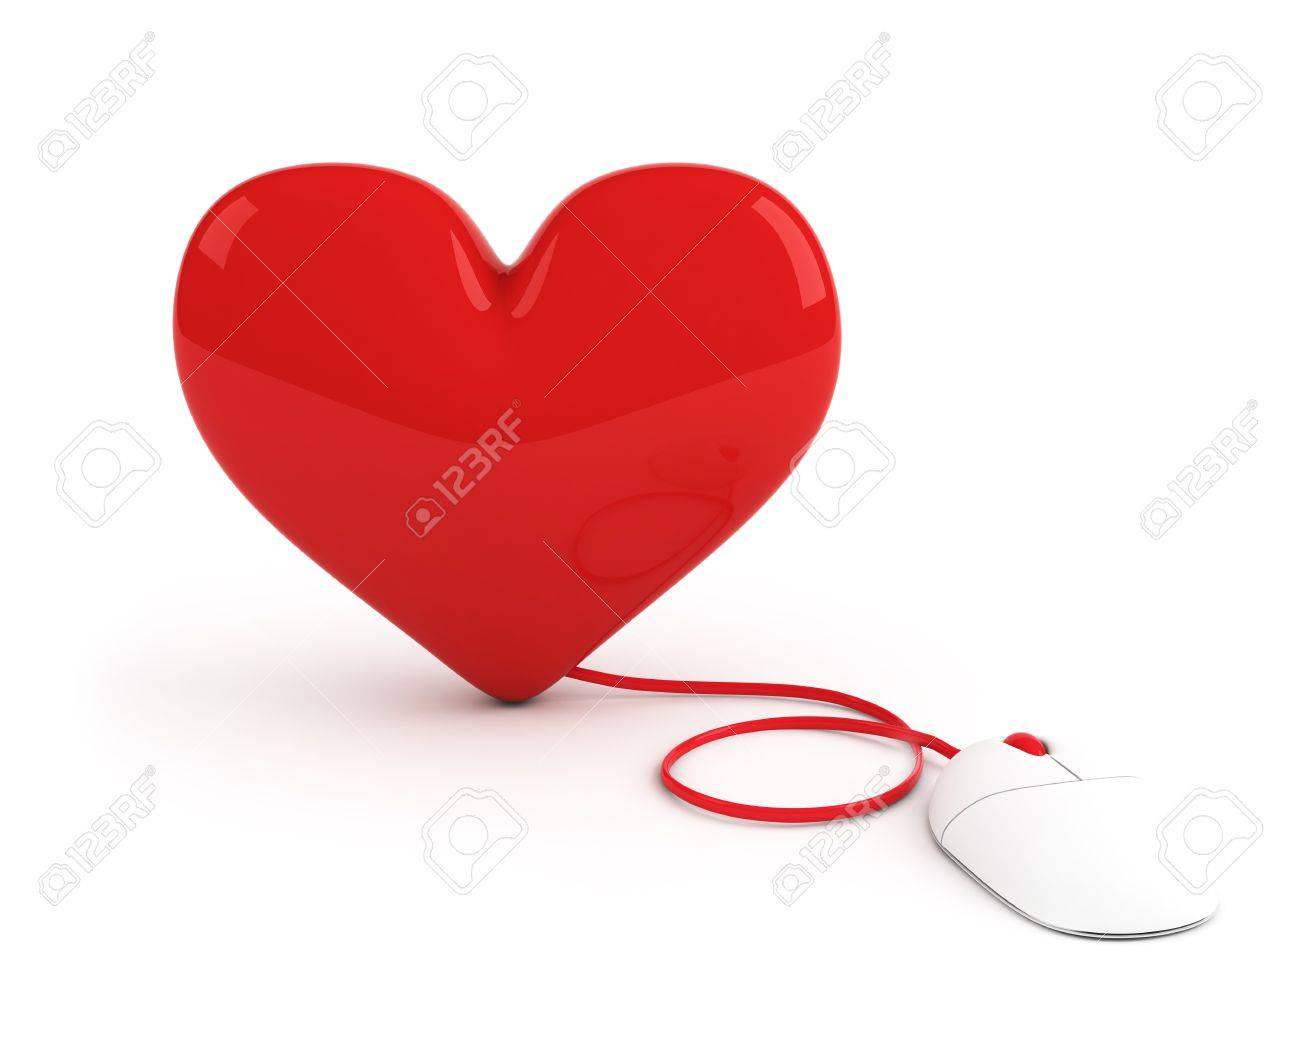 red heart controled by computer mouse Stock Photo - 4228866